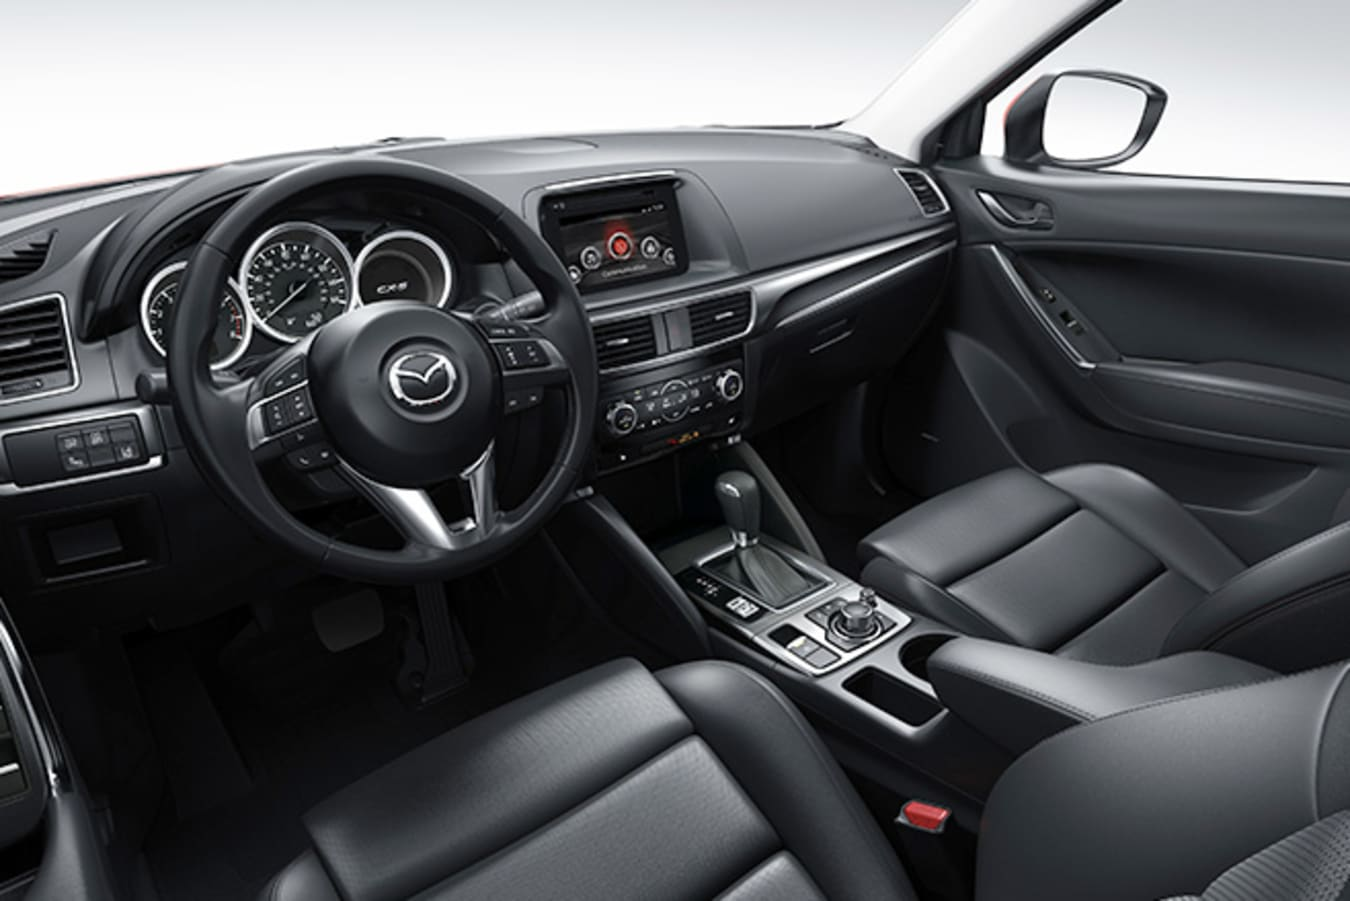 Mazda CX-5 Interior as seen from driver's seat